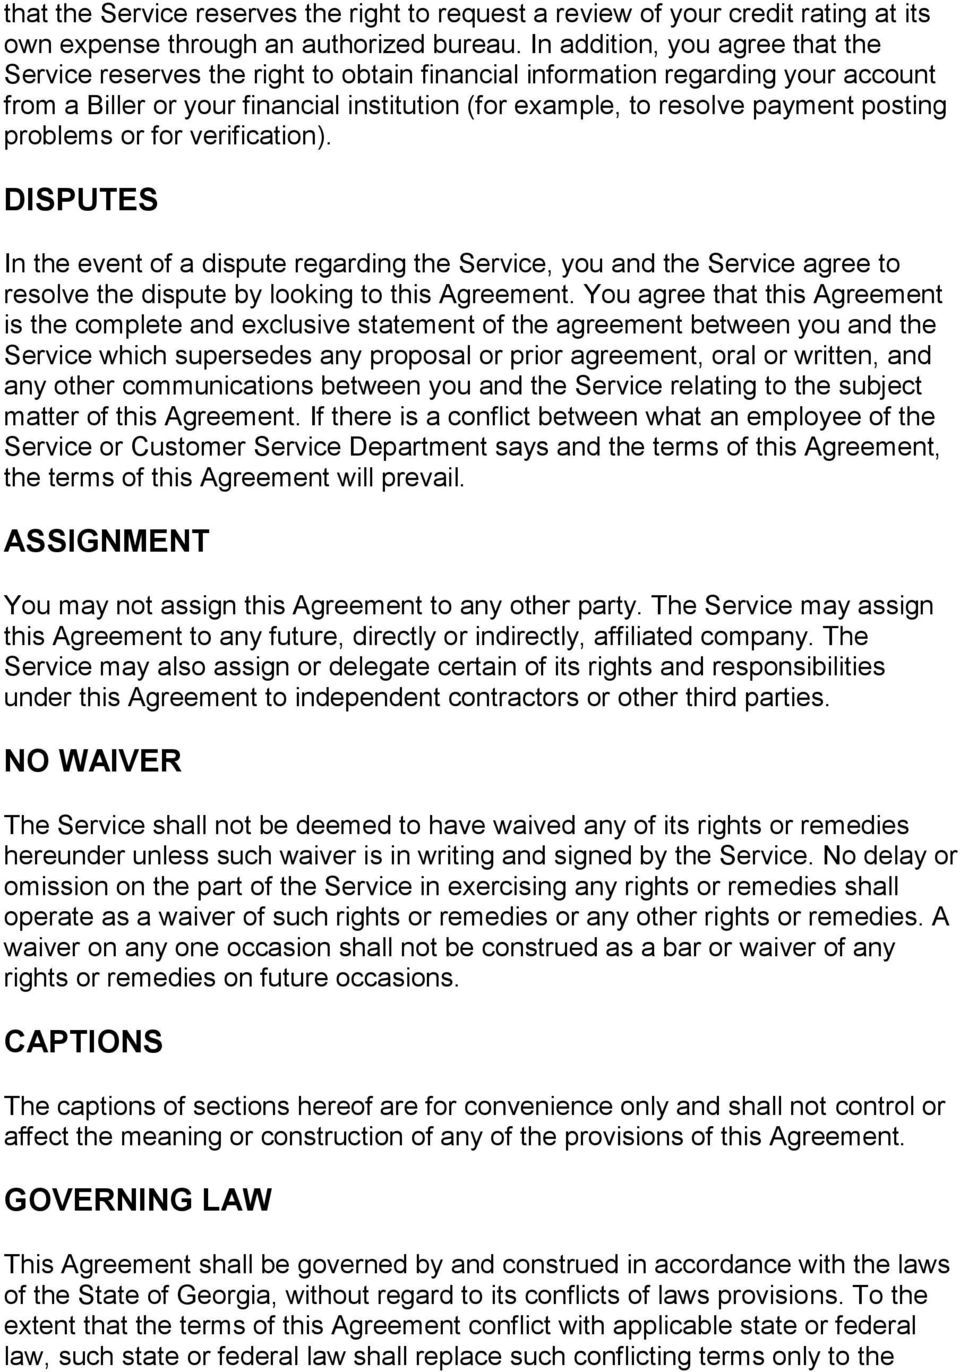 problems or for verification). DISPUTES In the event of a dispute regarding the Service, you and the Service agree to resolve the dispute by looking to this Agreement.